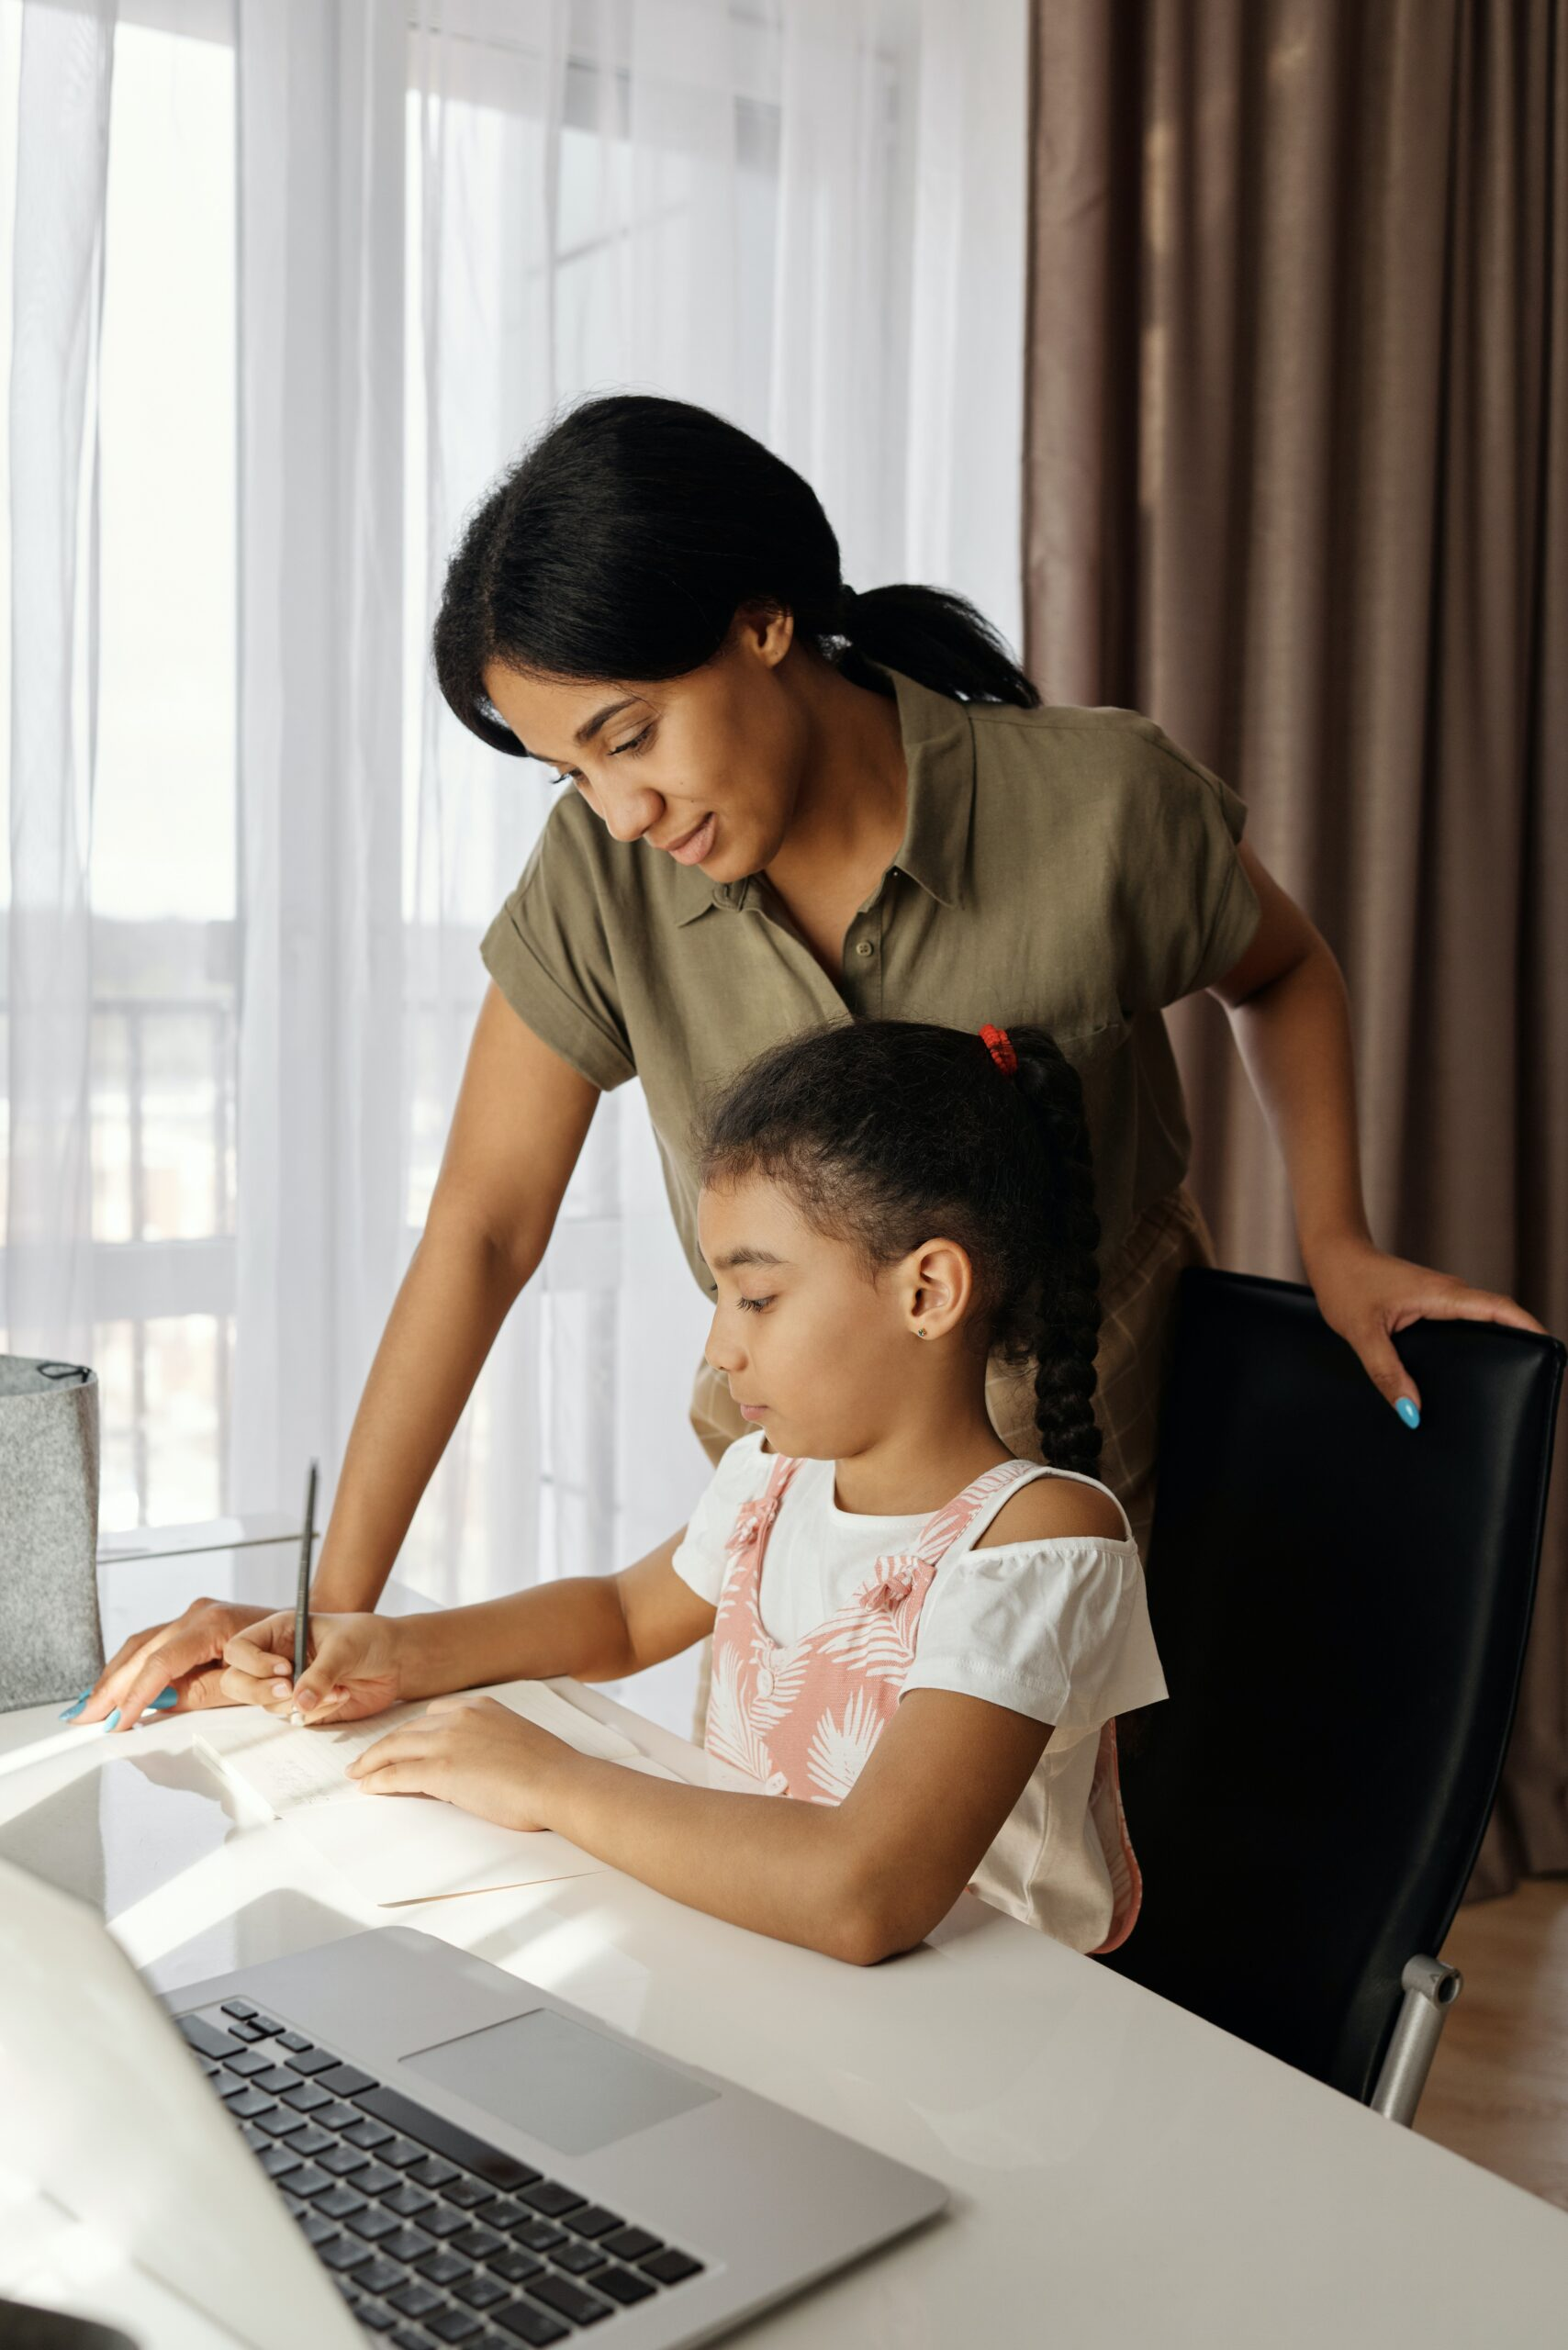 Mother overseeing her daughter at the table, doing her school work with computer open on the table